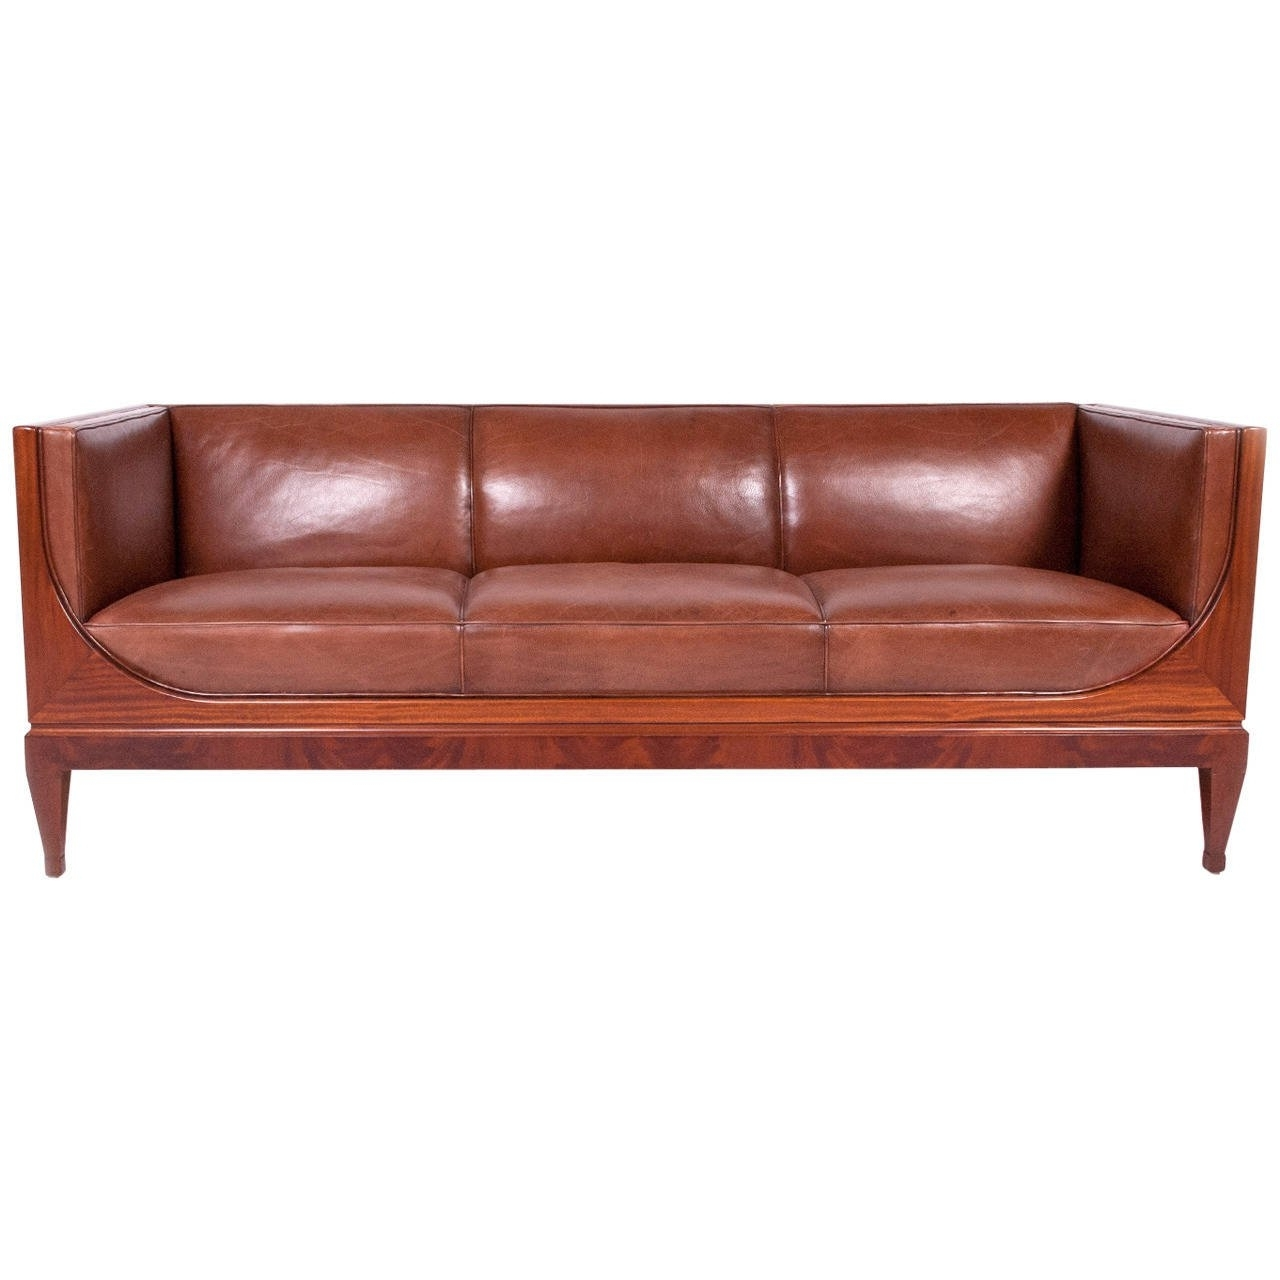 Well Known 1930S Sofas Intended For 1930S Sofas – 122 For Sale At 1Stdibs (View 13 of 15)